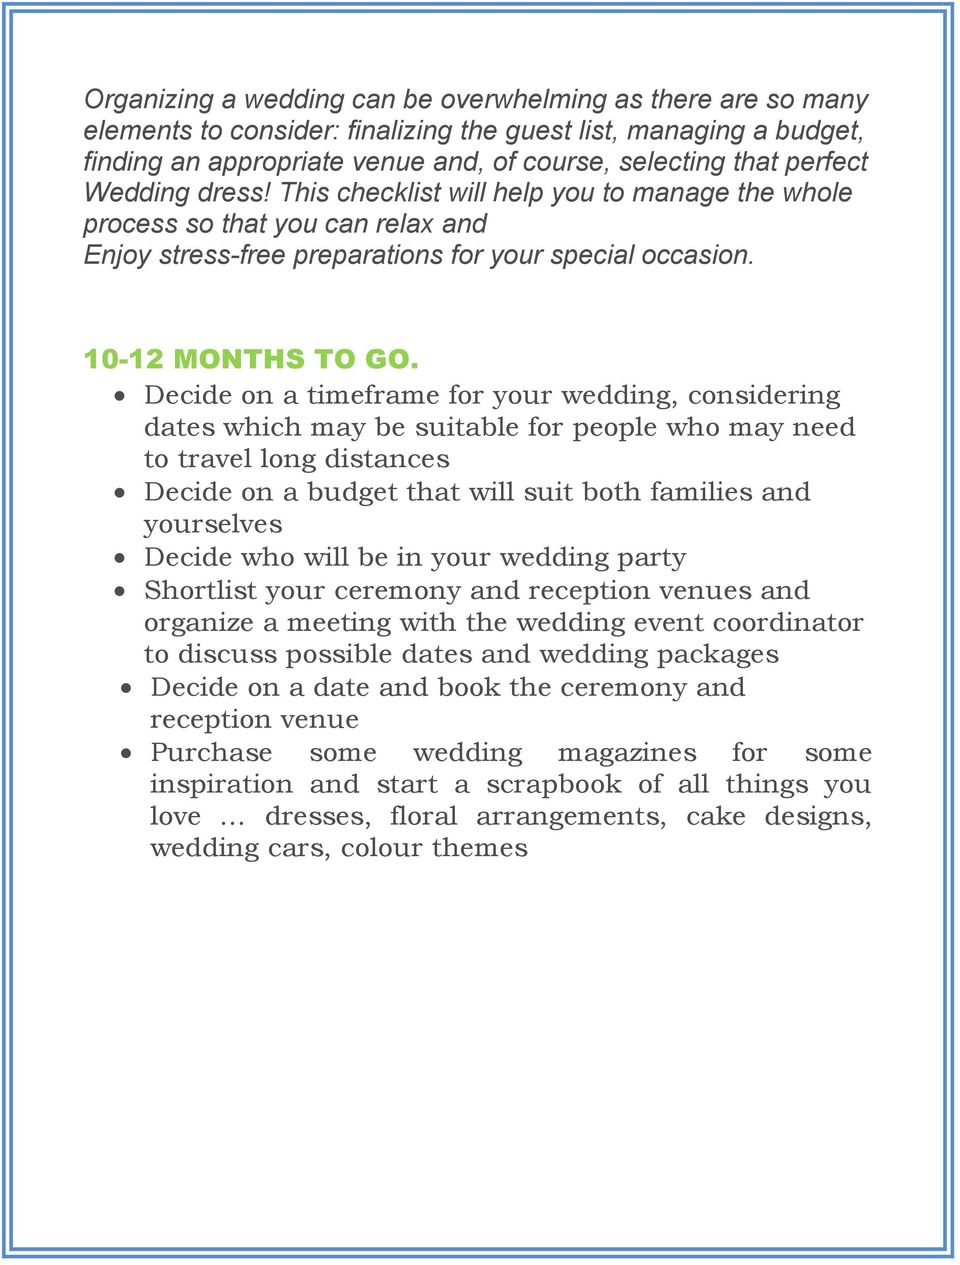 Decide on a timeframe for your wedding, considering dates which may be suitable for people who may need to travel long distances Decide on a budget that will suit both families and yourselves Decide